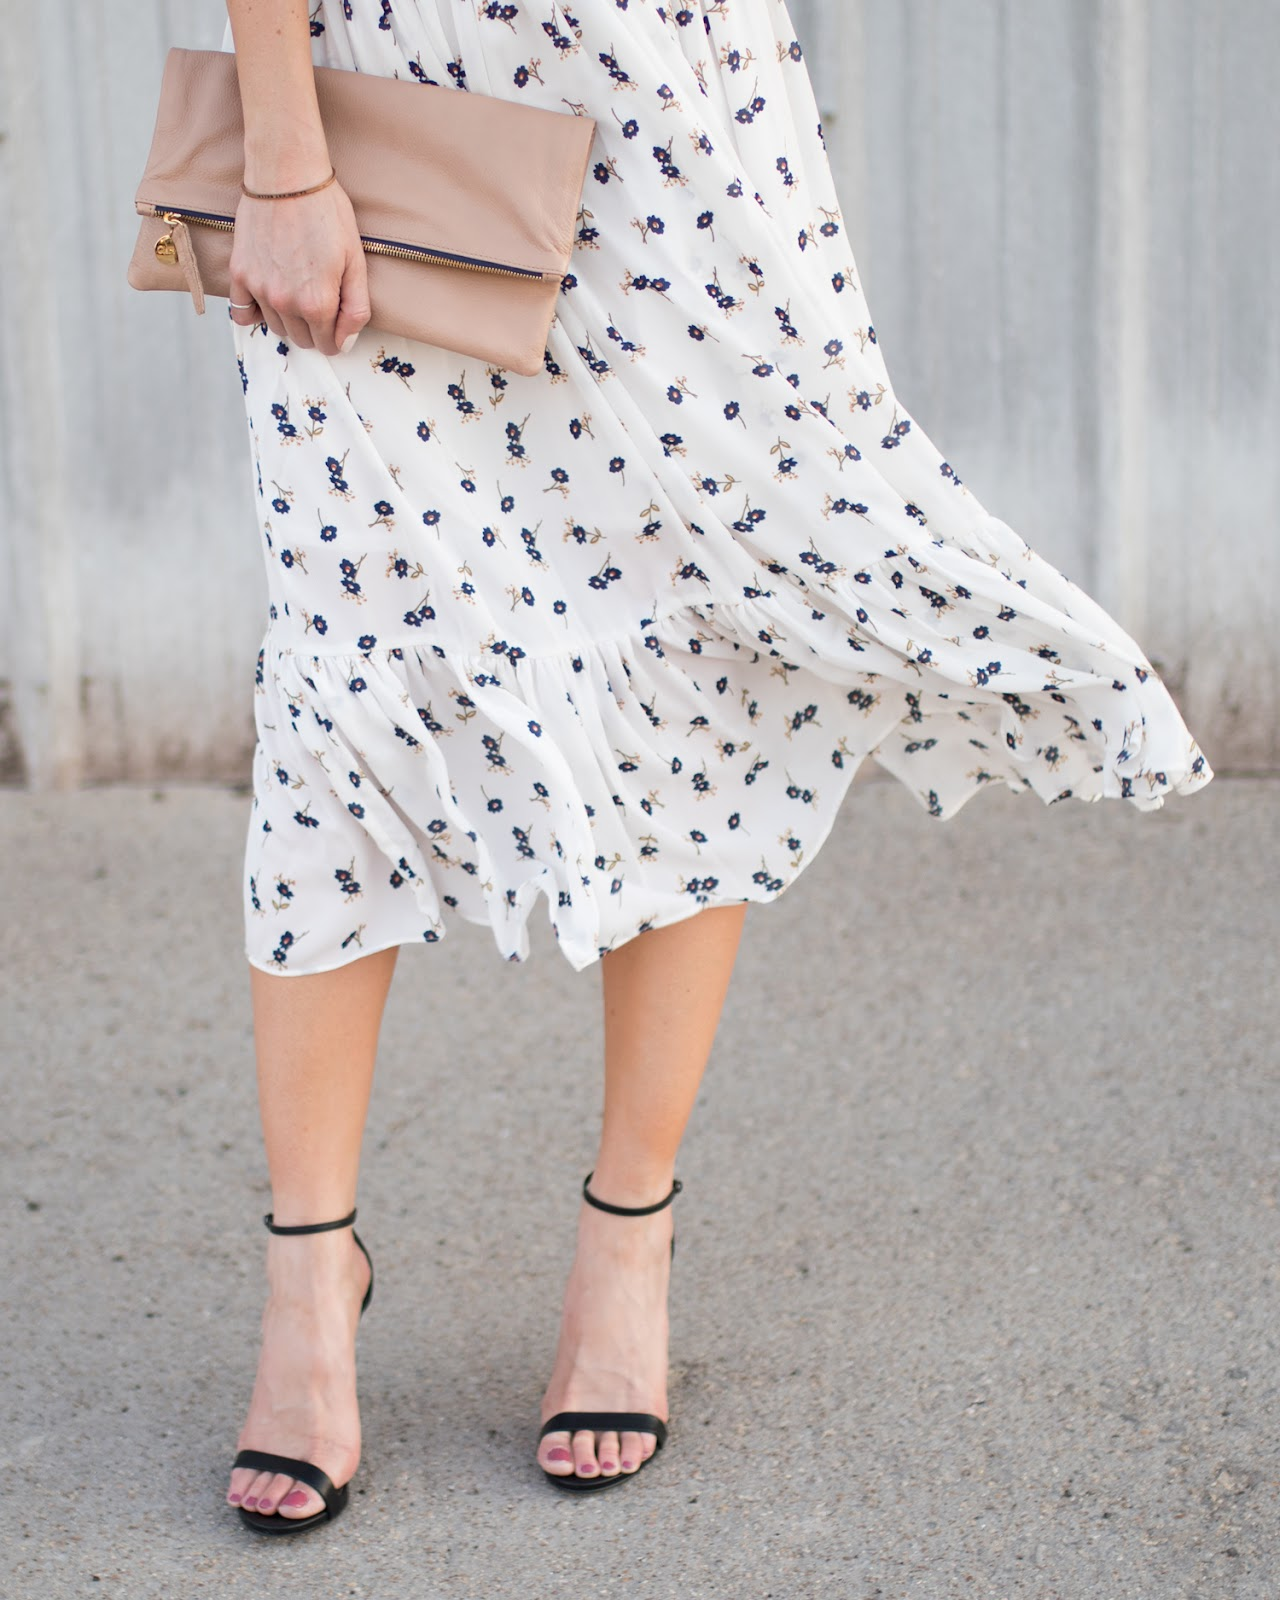 Floral dress + strappy heeled sandals